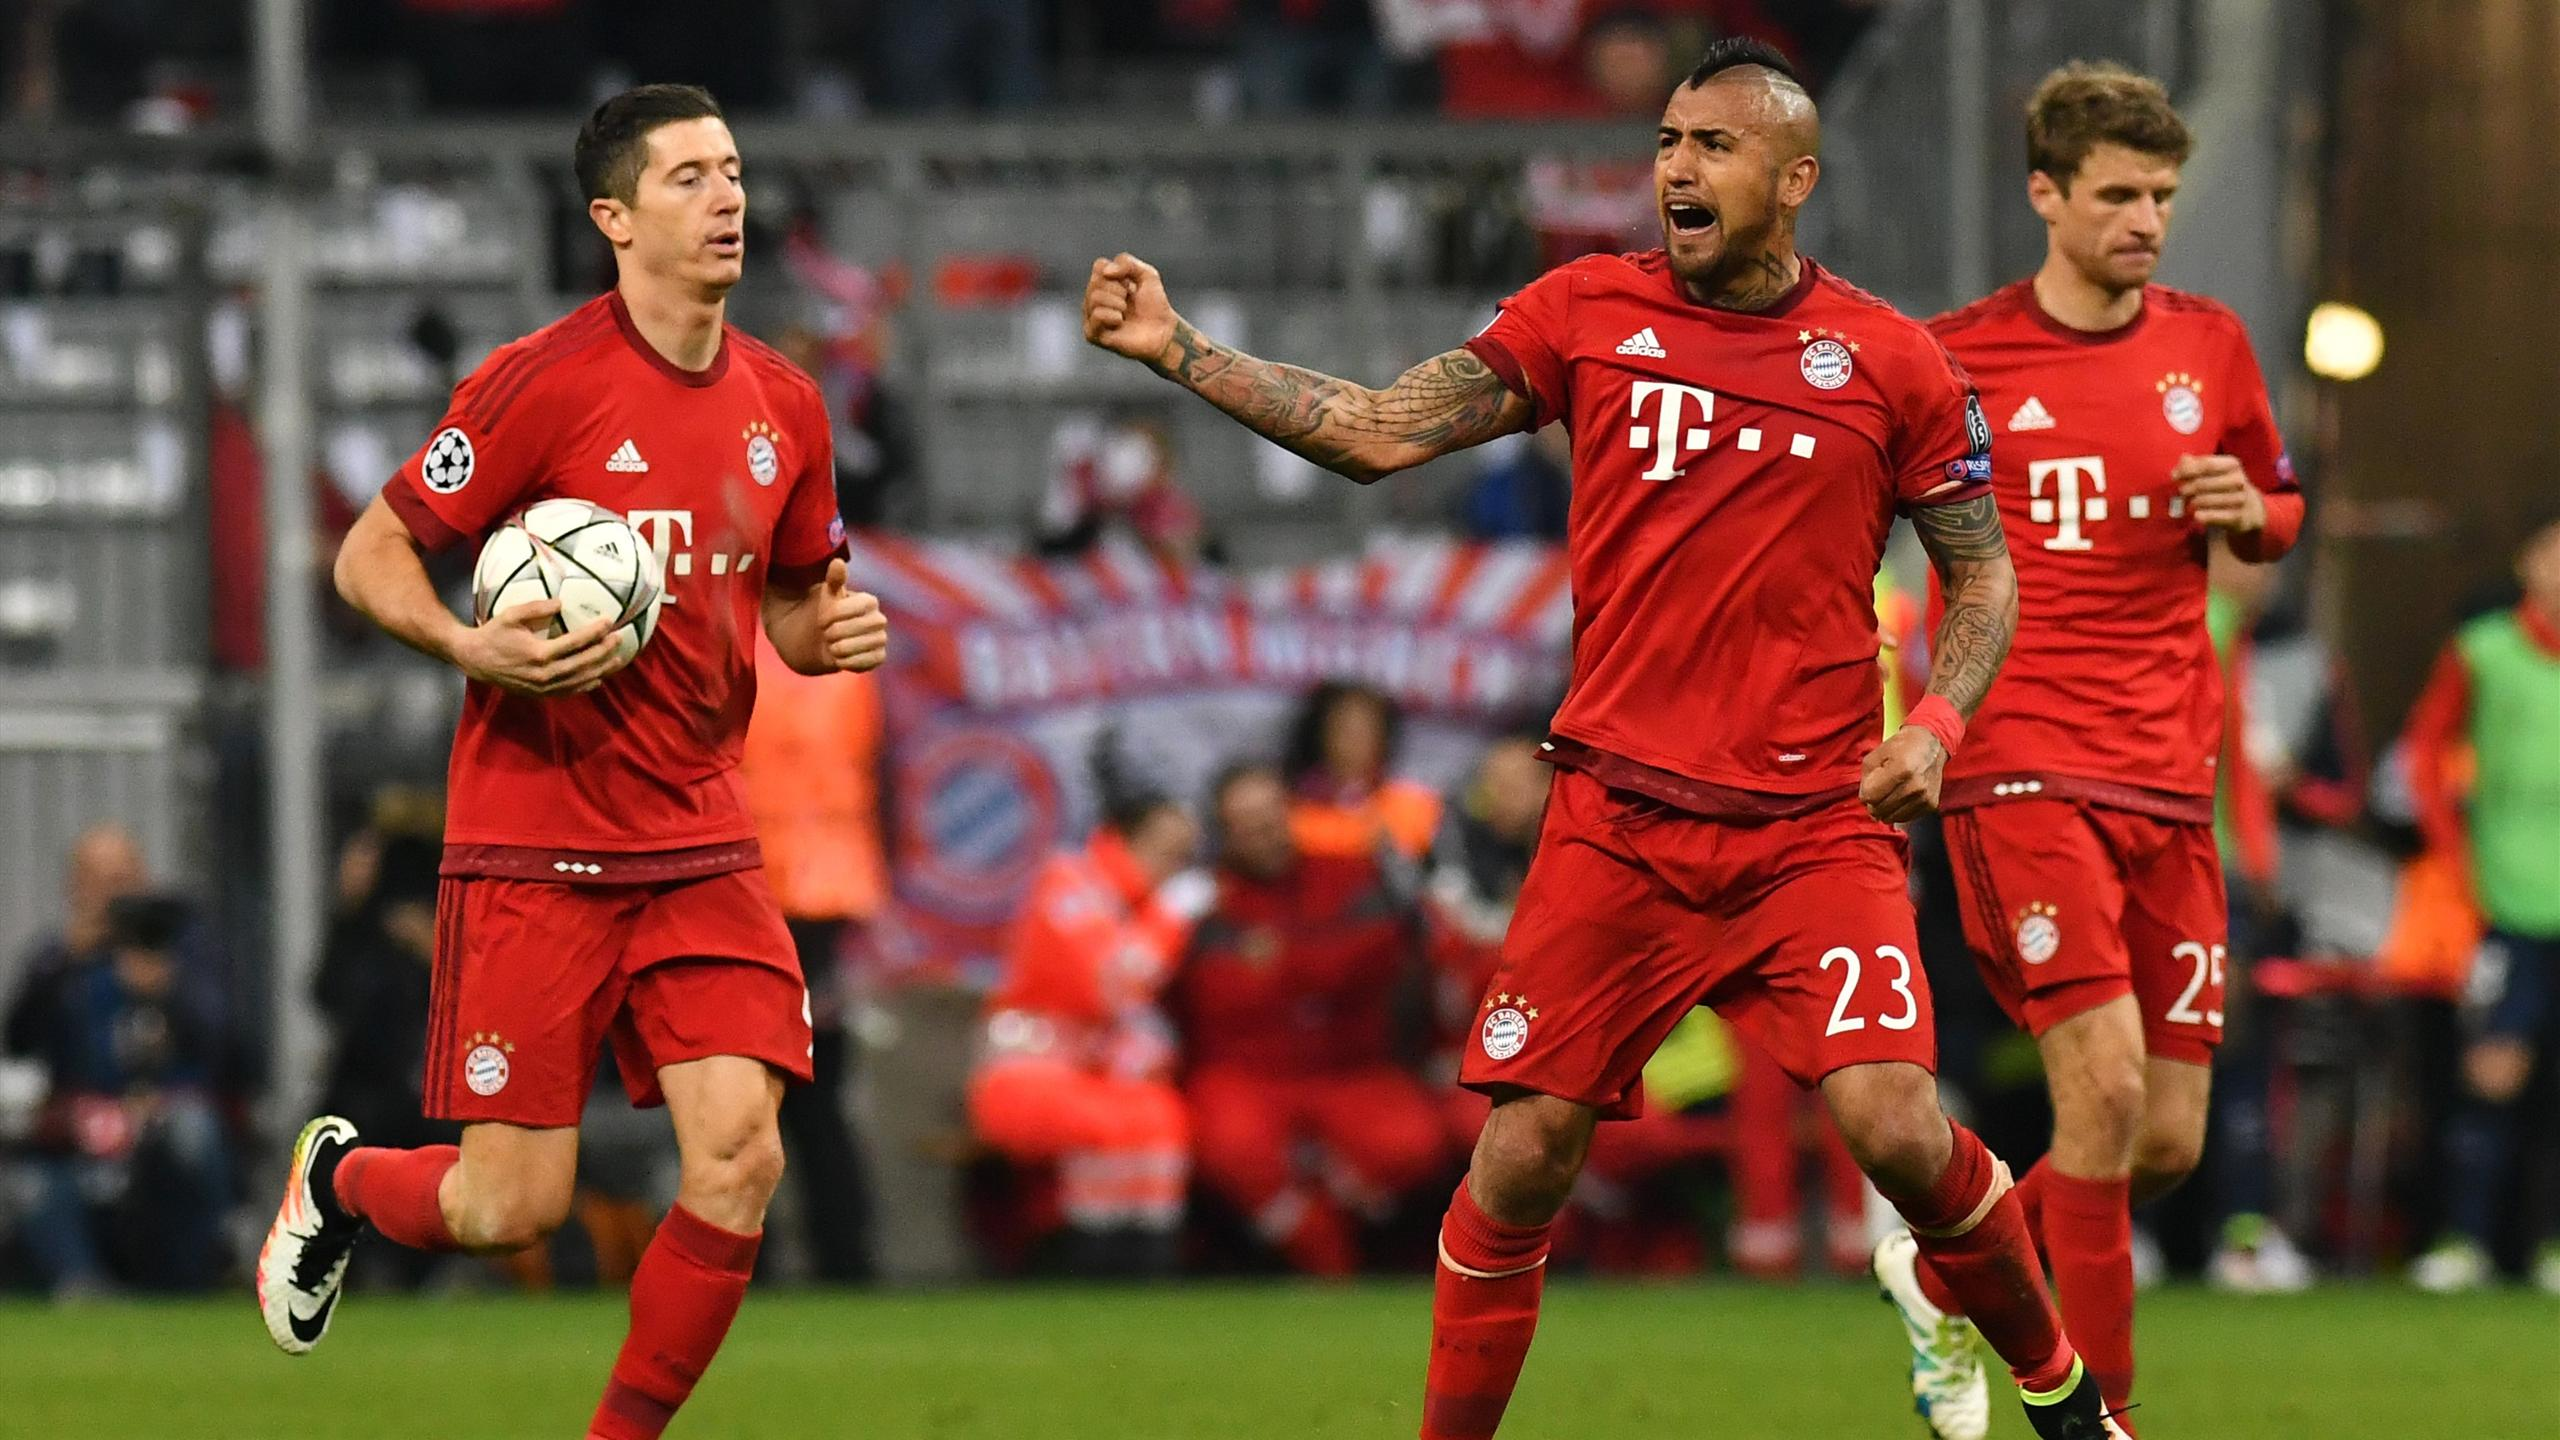 Bayern Munich's Polish striker Robert Lewandowski celebrates scoring with his team-mates Chilean midfielder Arturo Vidal (C) and Bayern Munich's midfielder Thomas Mueller